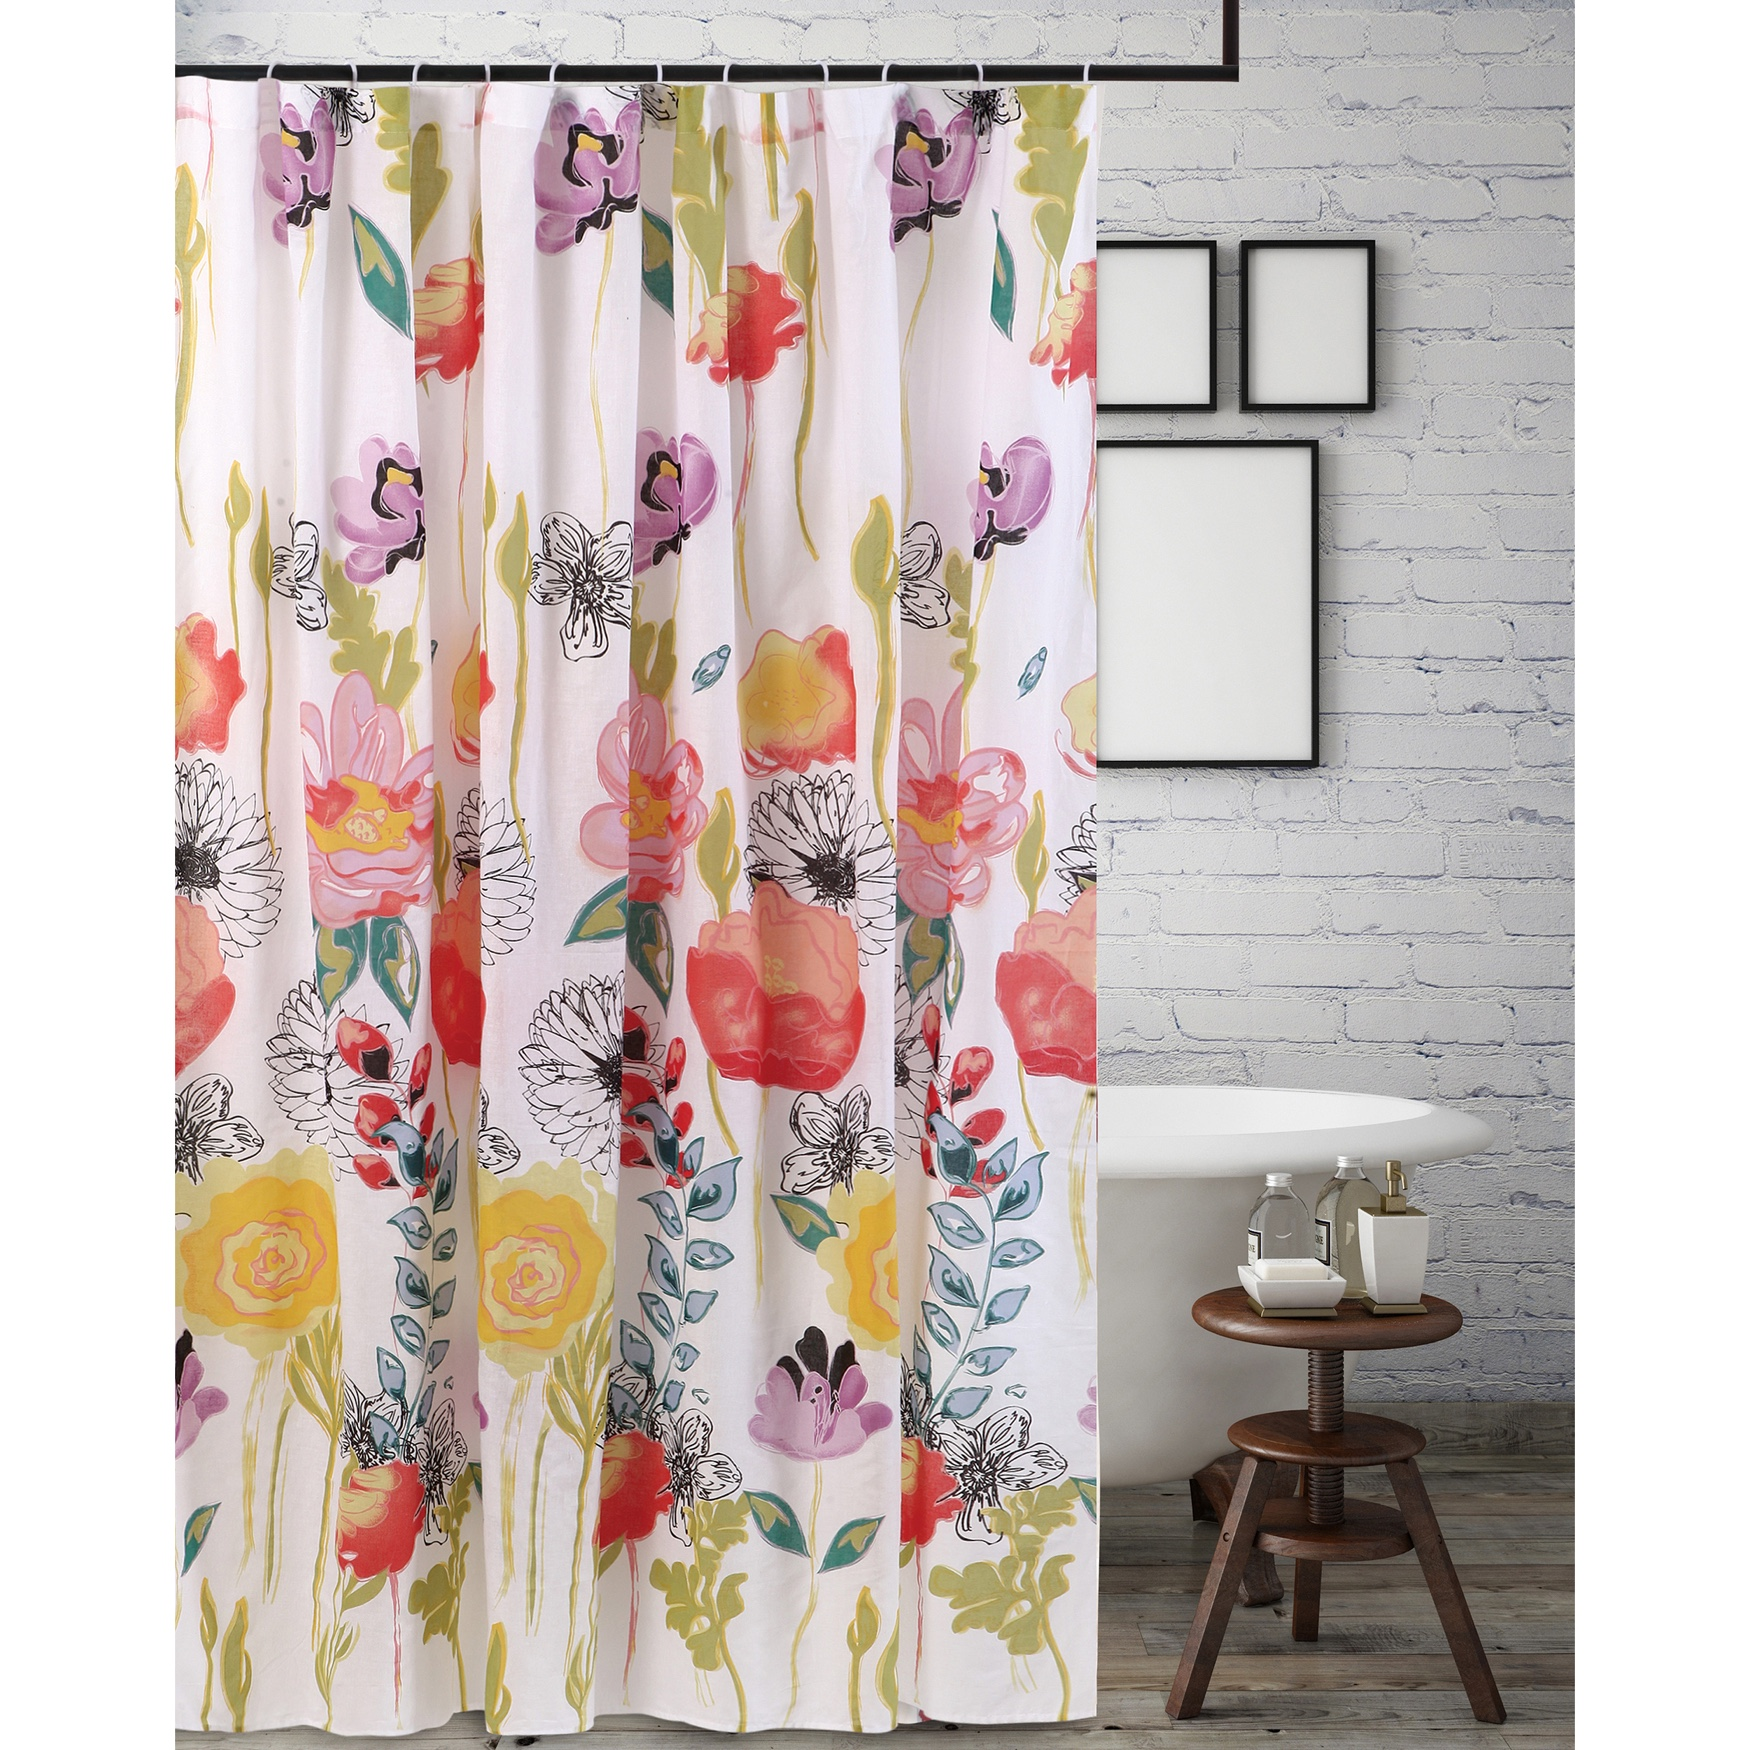 Greenland Home Watercolor Dream Bath Shower Curtain